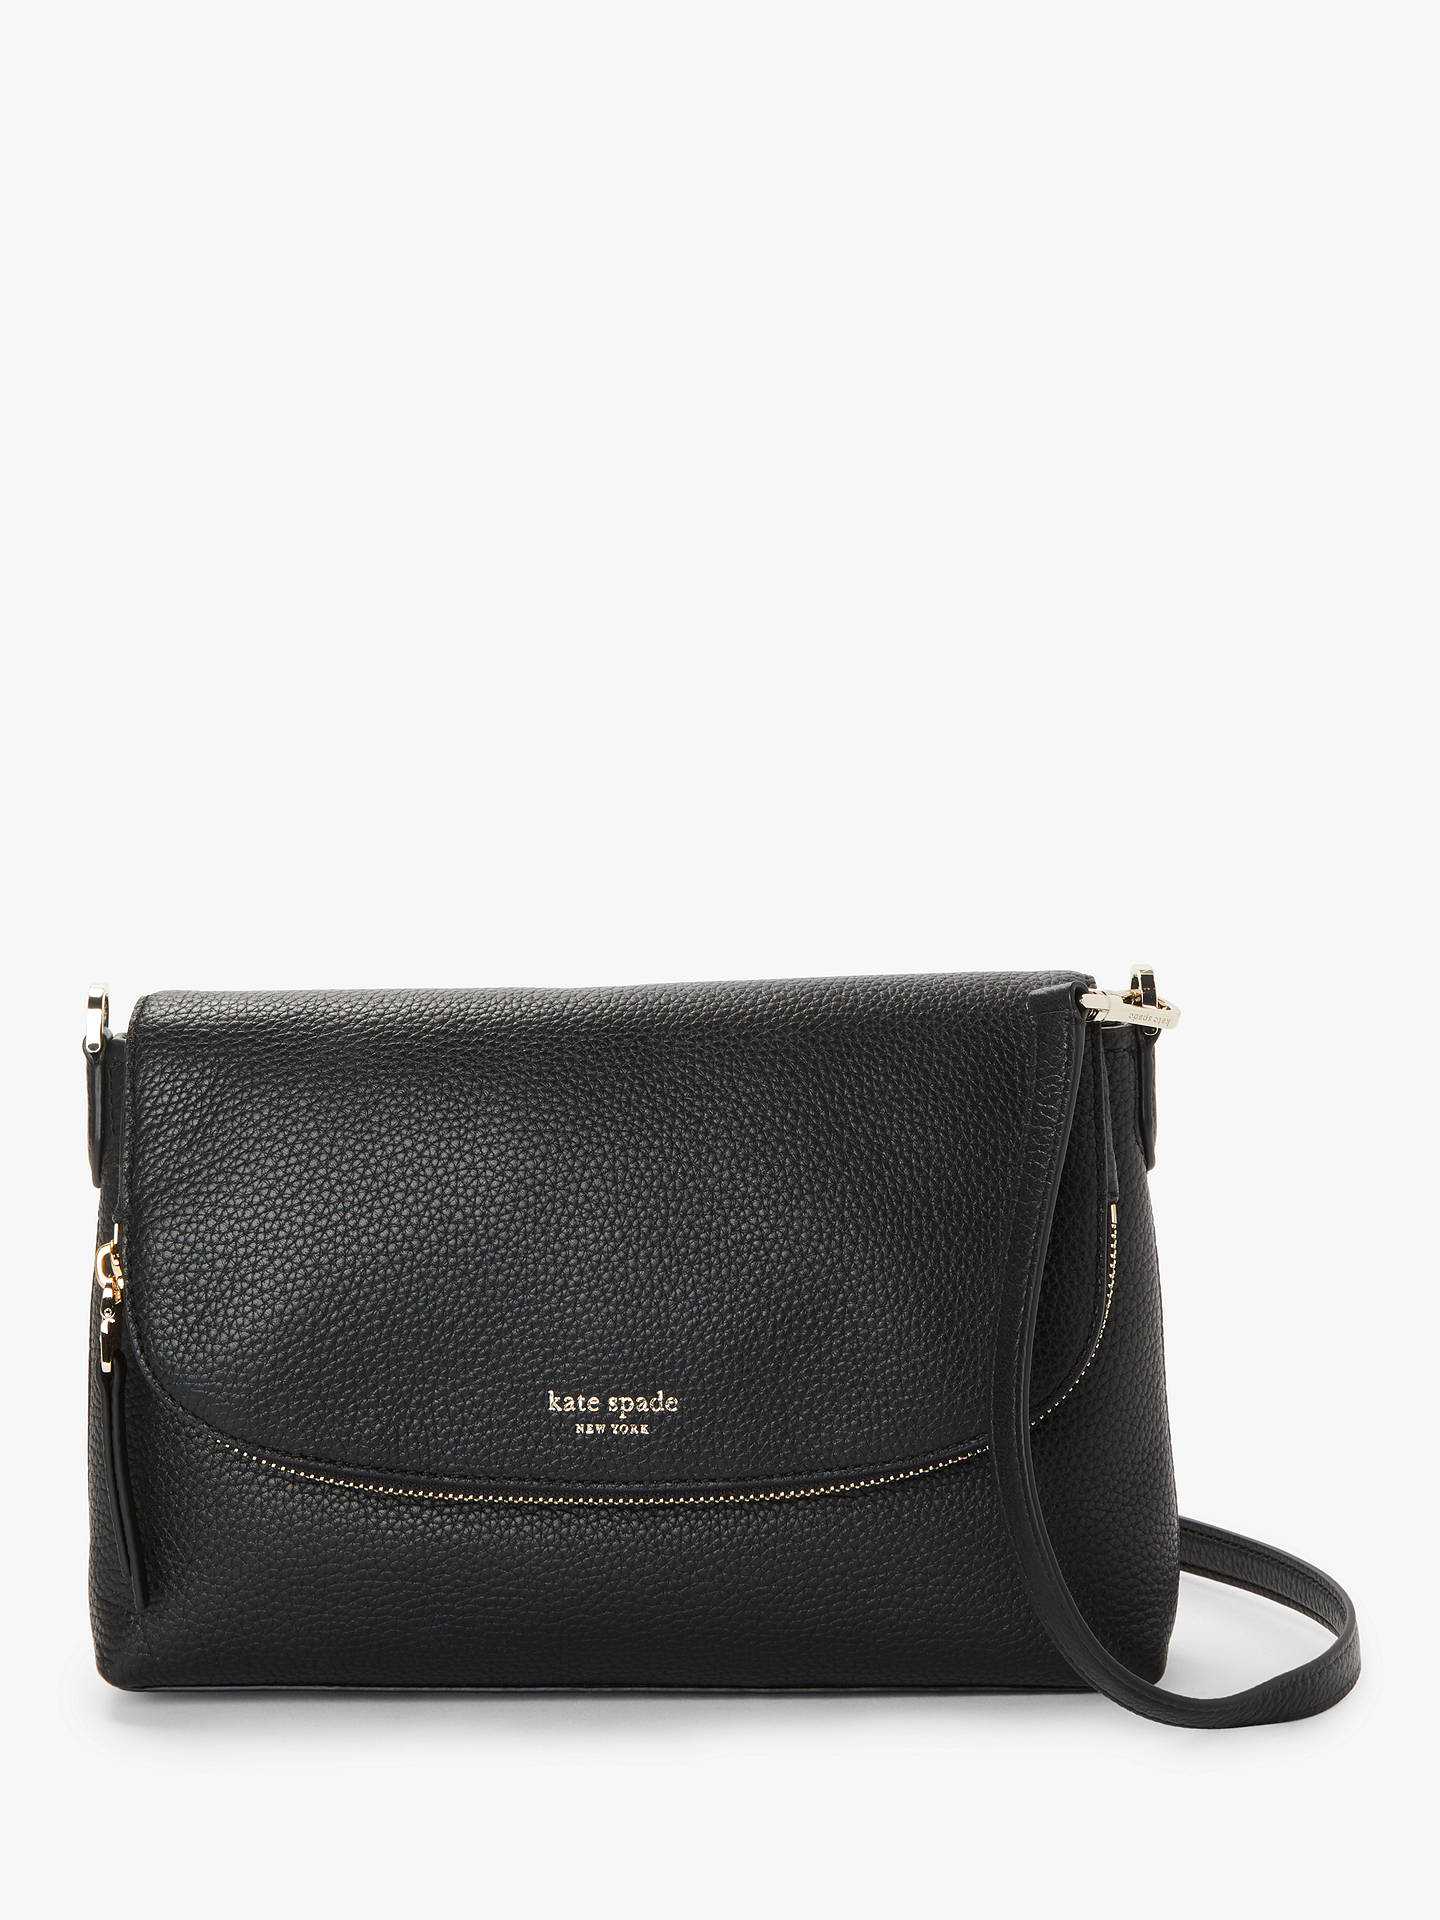 Kate Spade New York Polly Leather Large Flap Over Cross Body Bag At